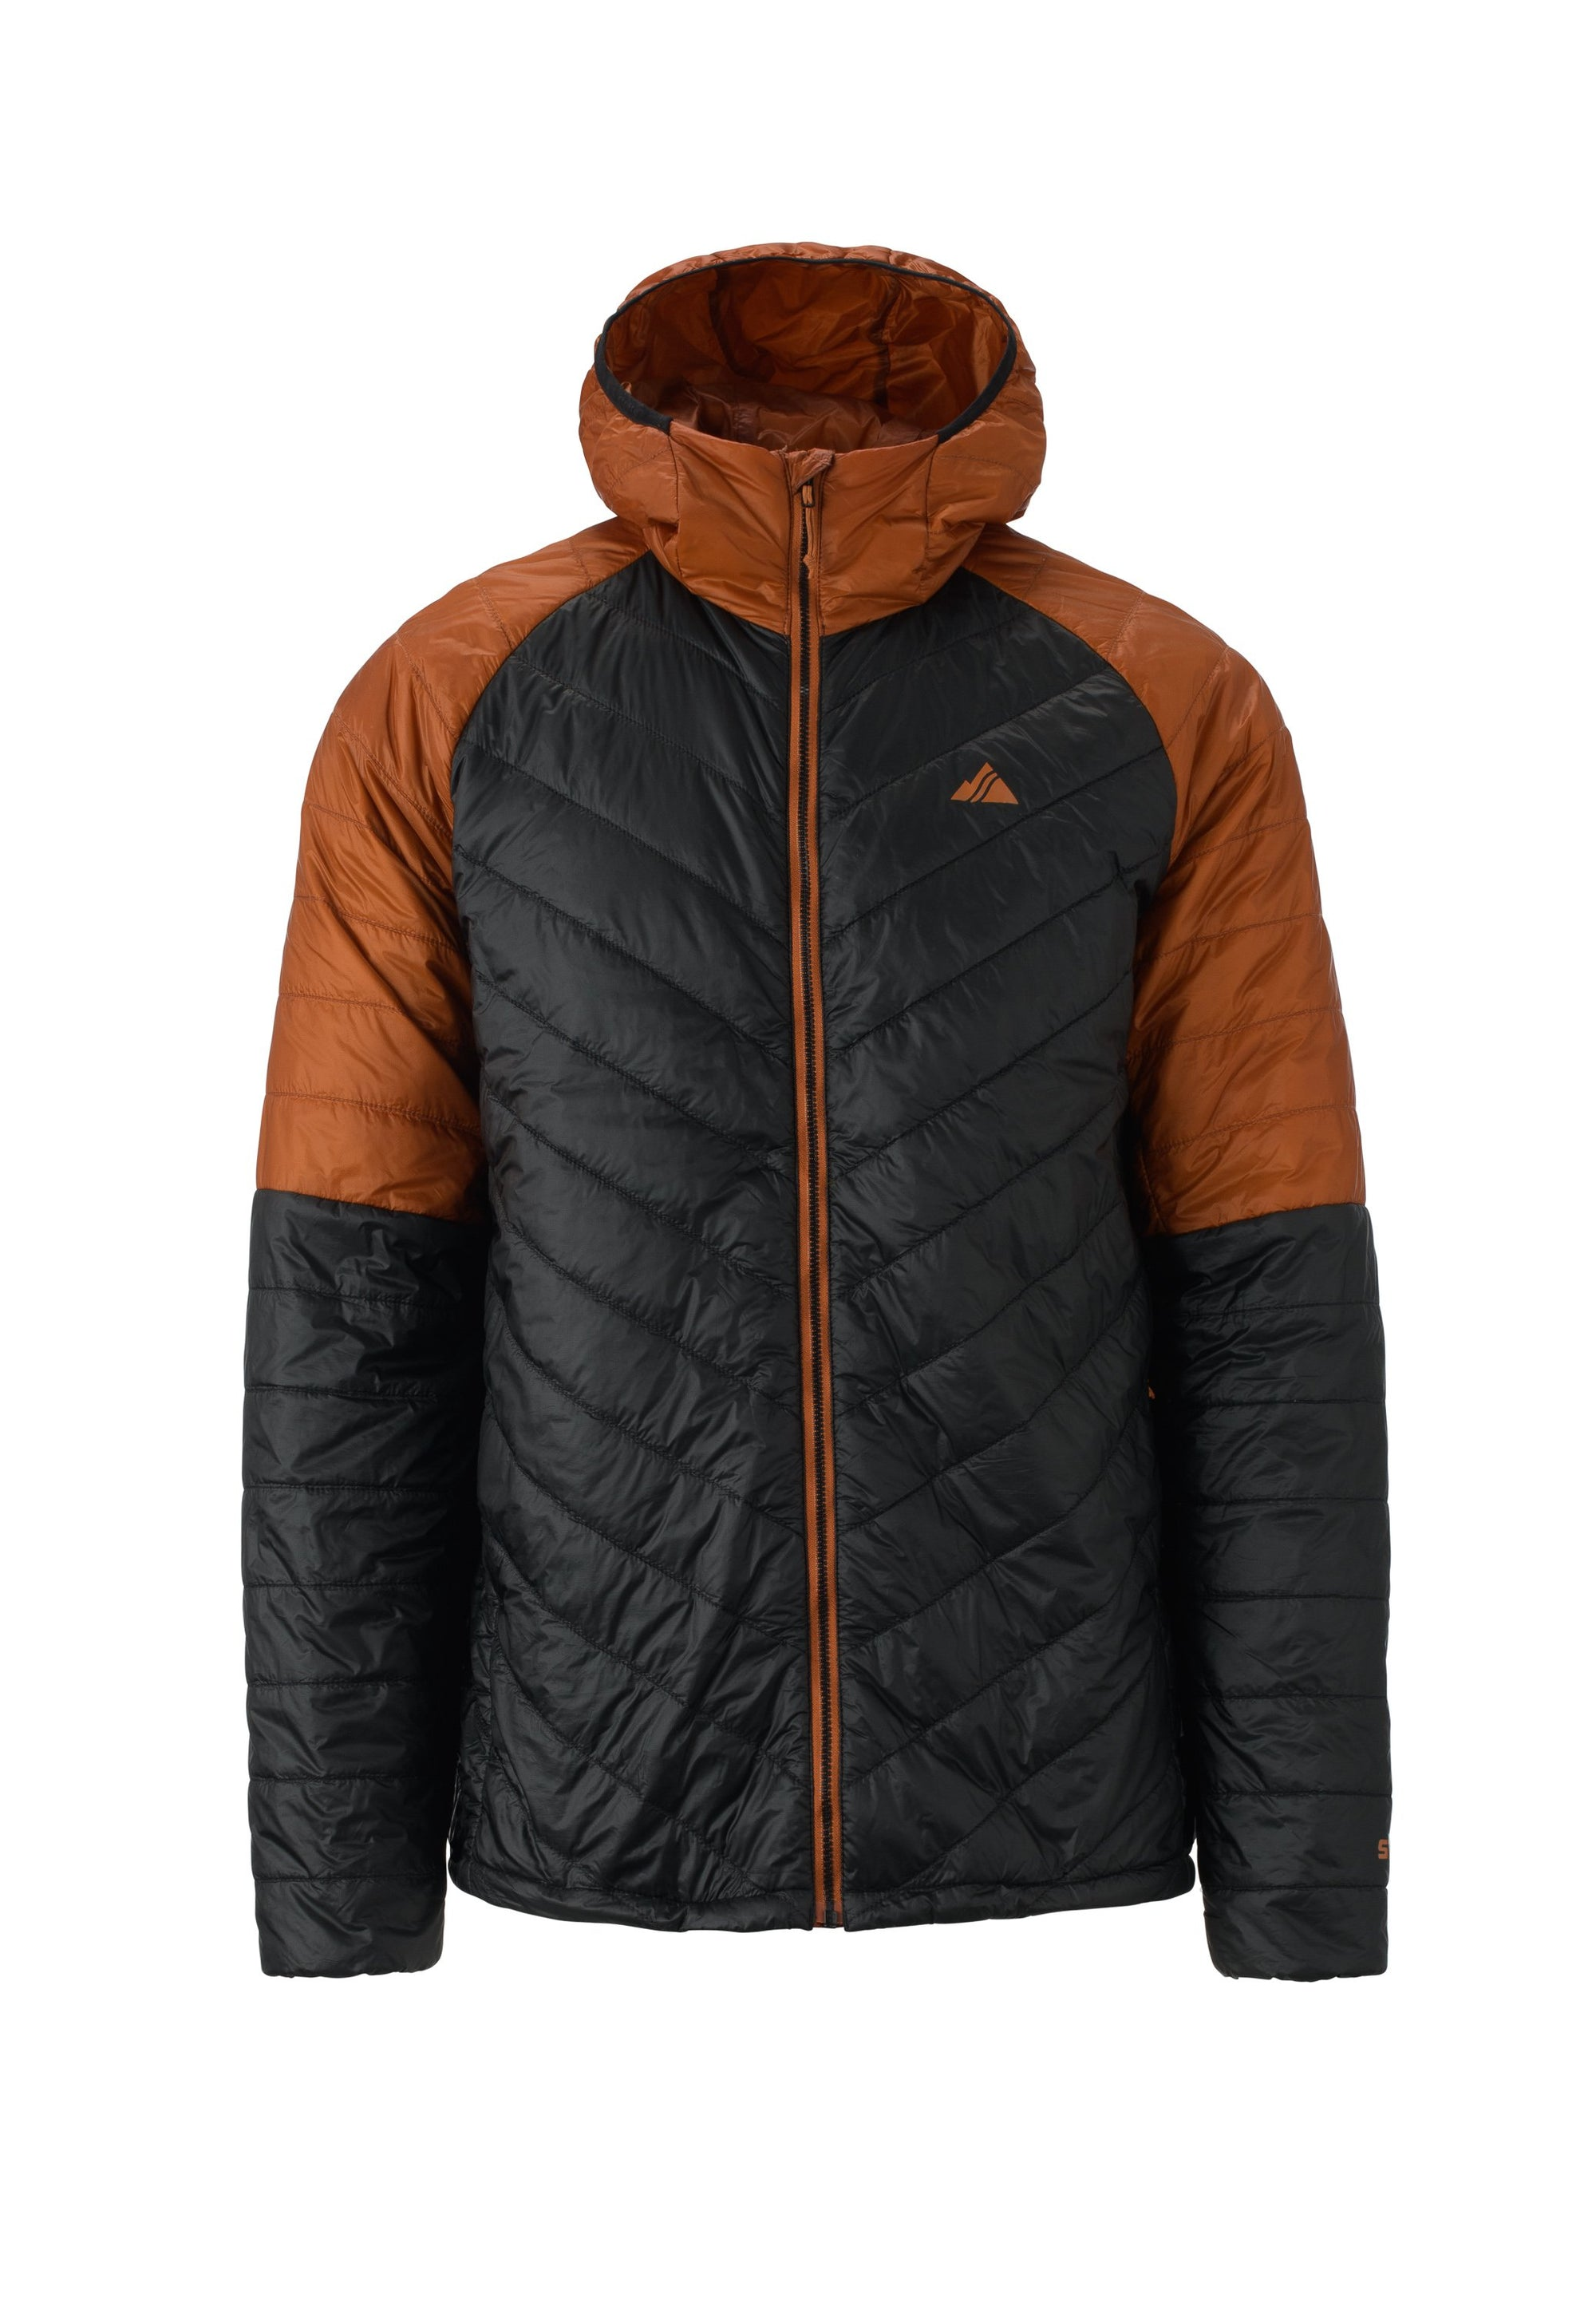 burnt orange 2019 men's aero insulated skiing and snowboarding down jacket from strafe outerwear